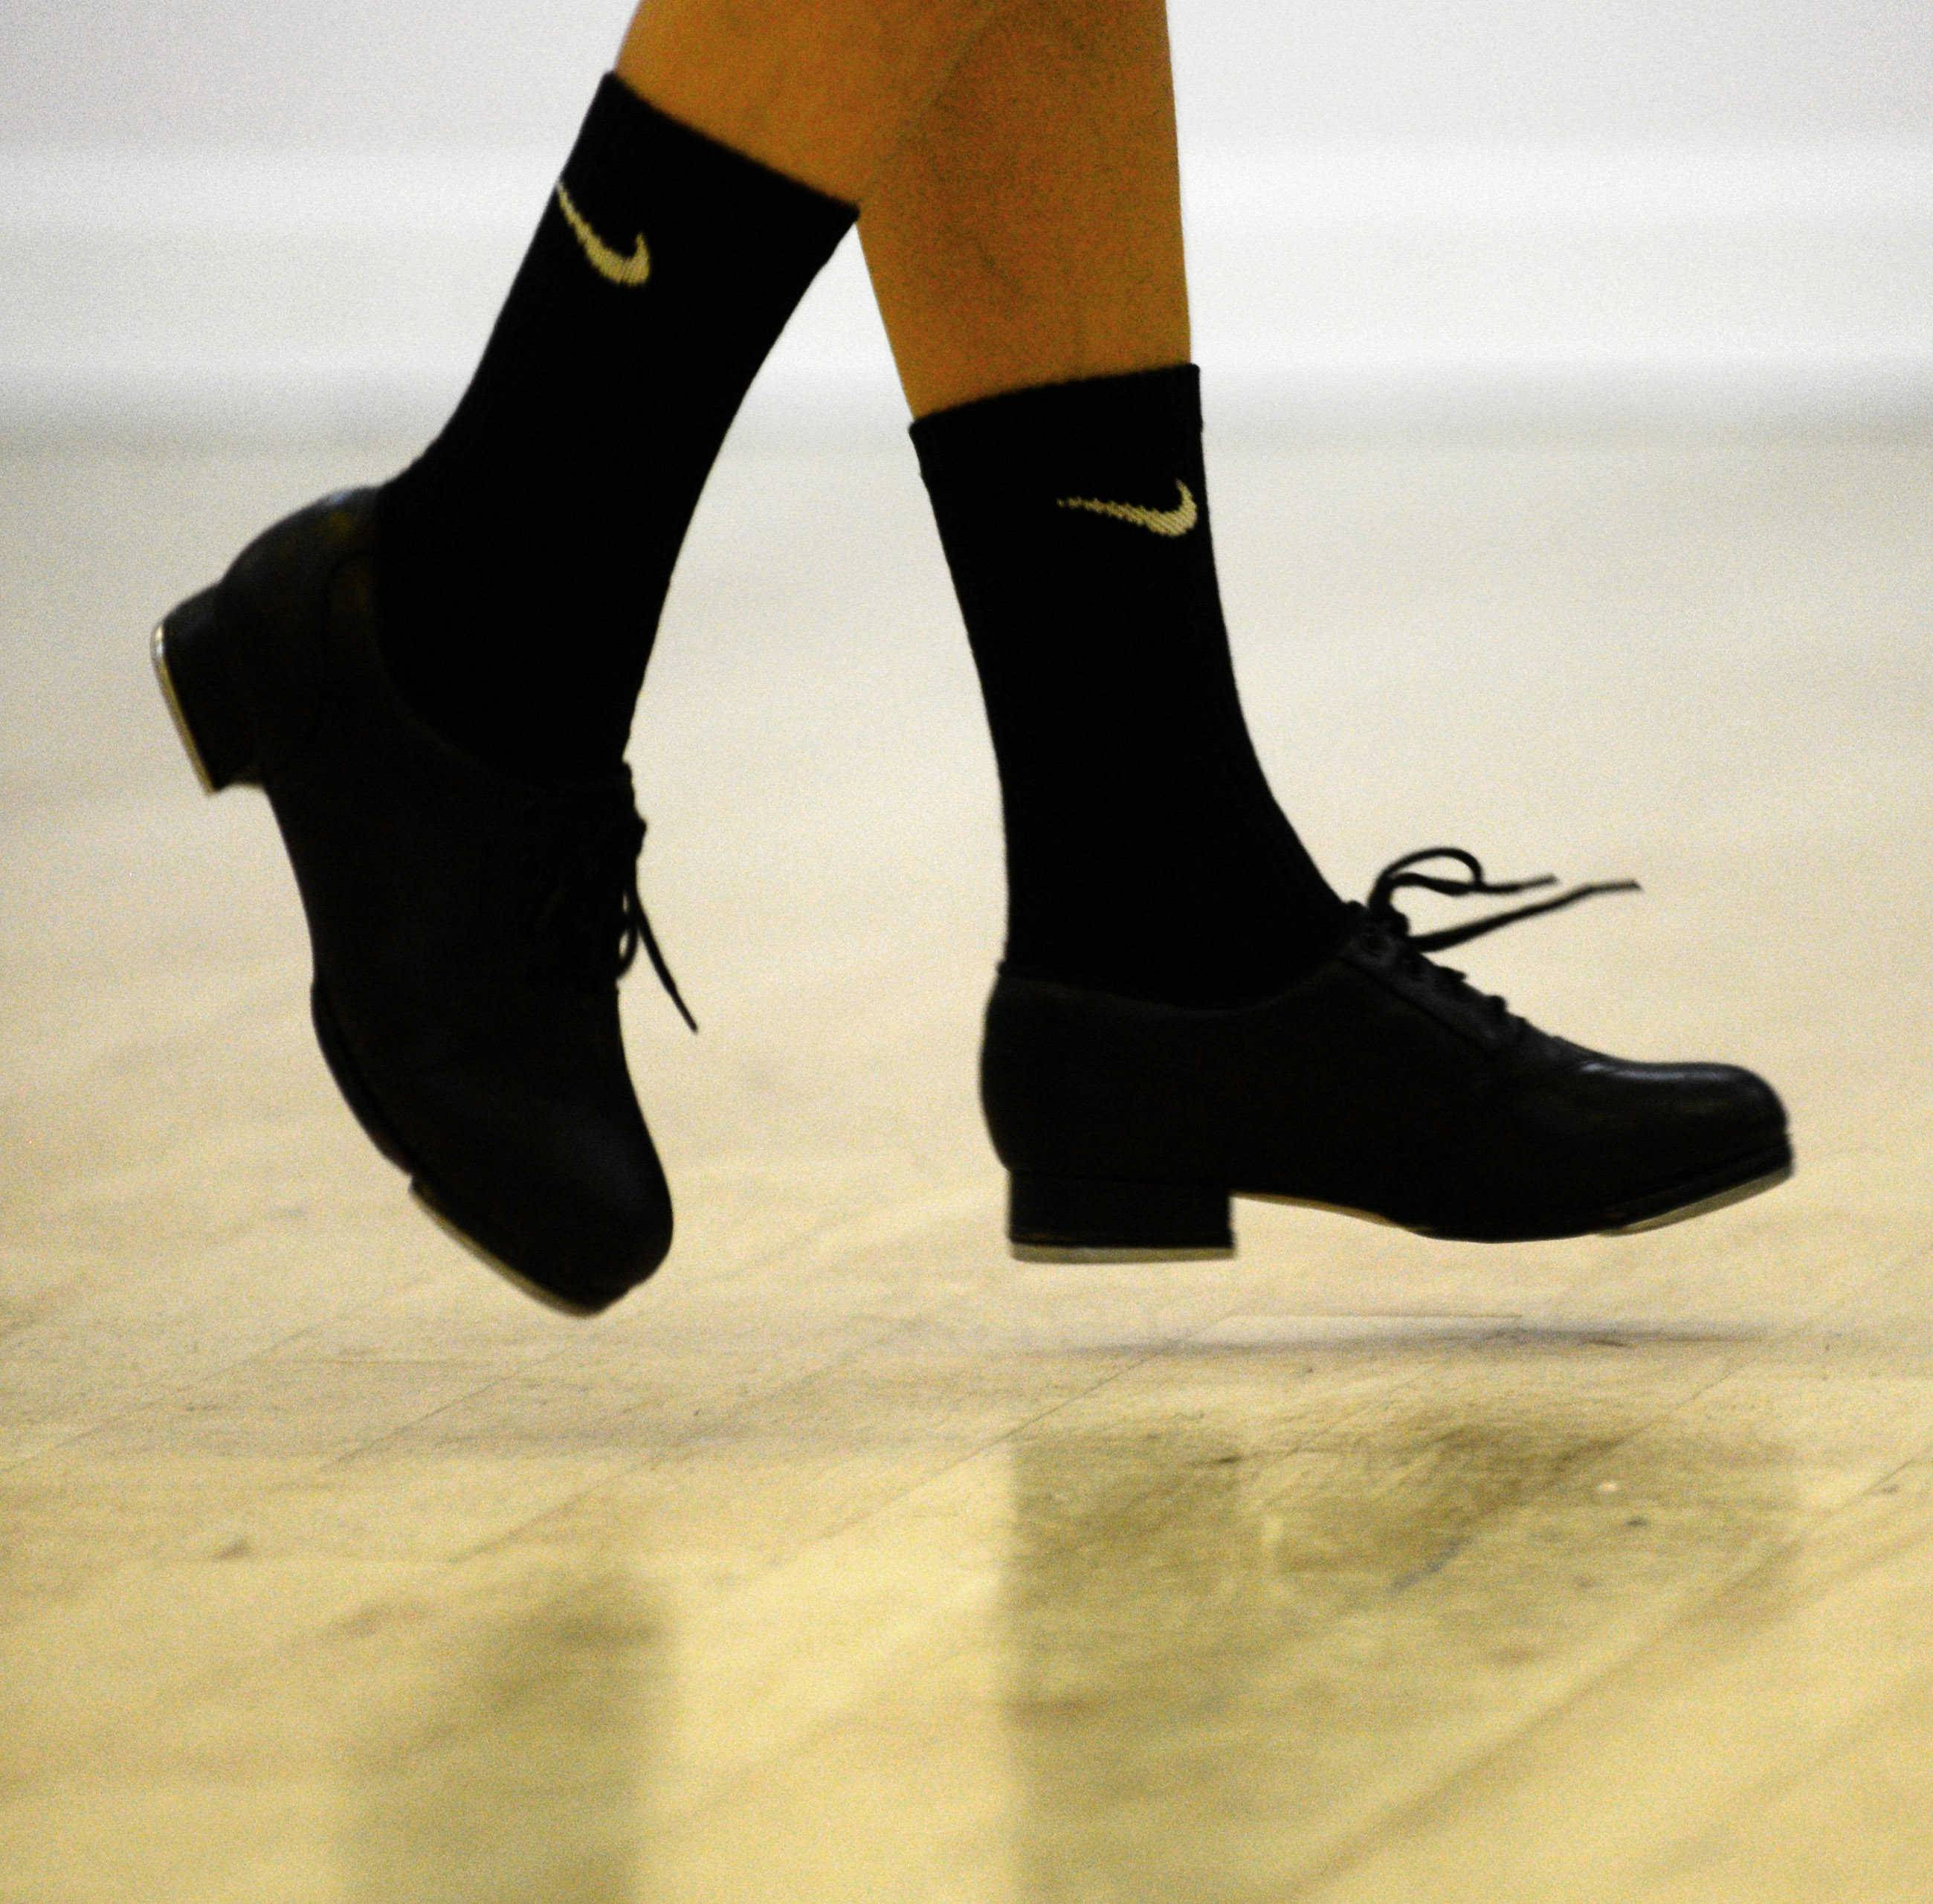 Brianne Cannataro, 10, of Schaumburg practices tap dancing at The Edge Dance Academy in Palatine. Brianne, who's also a straight-A student, is one of just three dancers chosen to represent the United States in December at the World Tap Dance Championship.